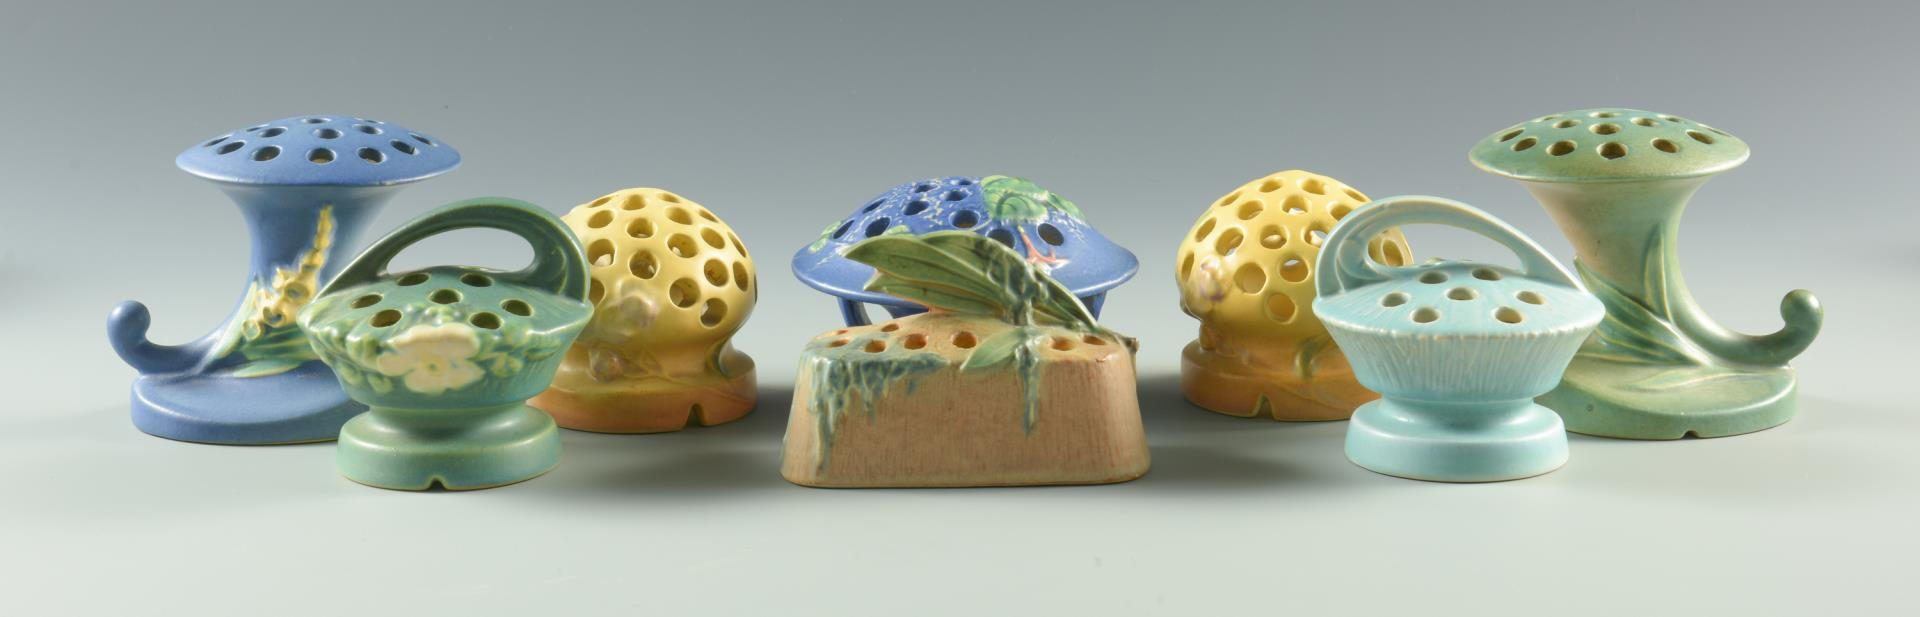 Lot 65: Grouping of 18 Art Pottery Flower Frogs